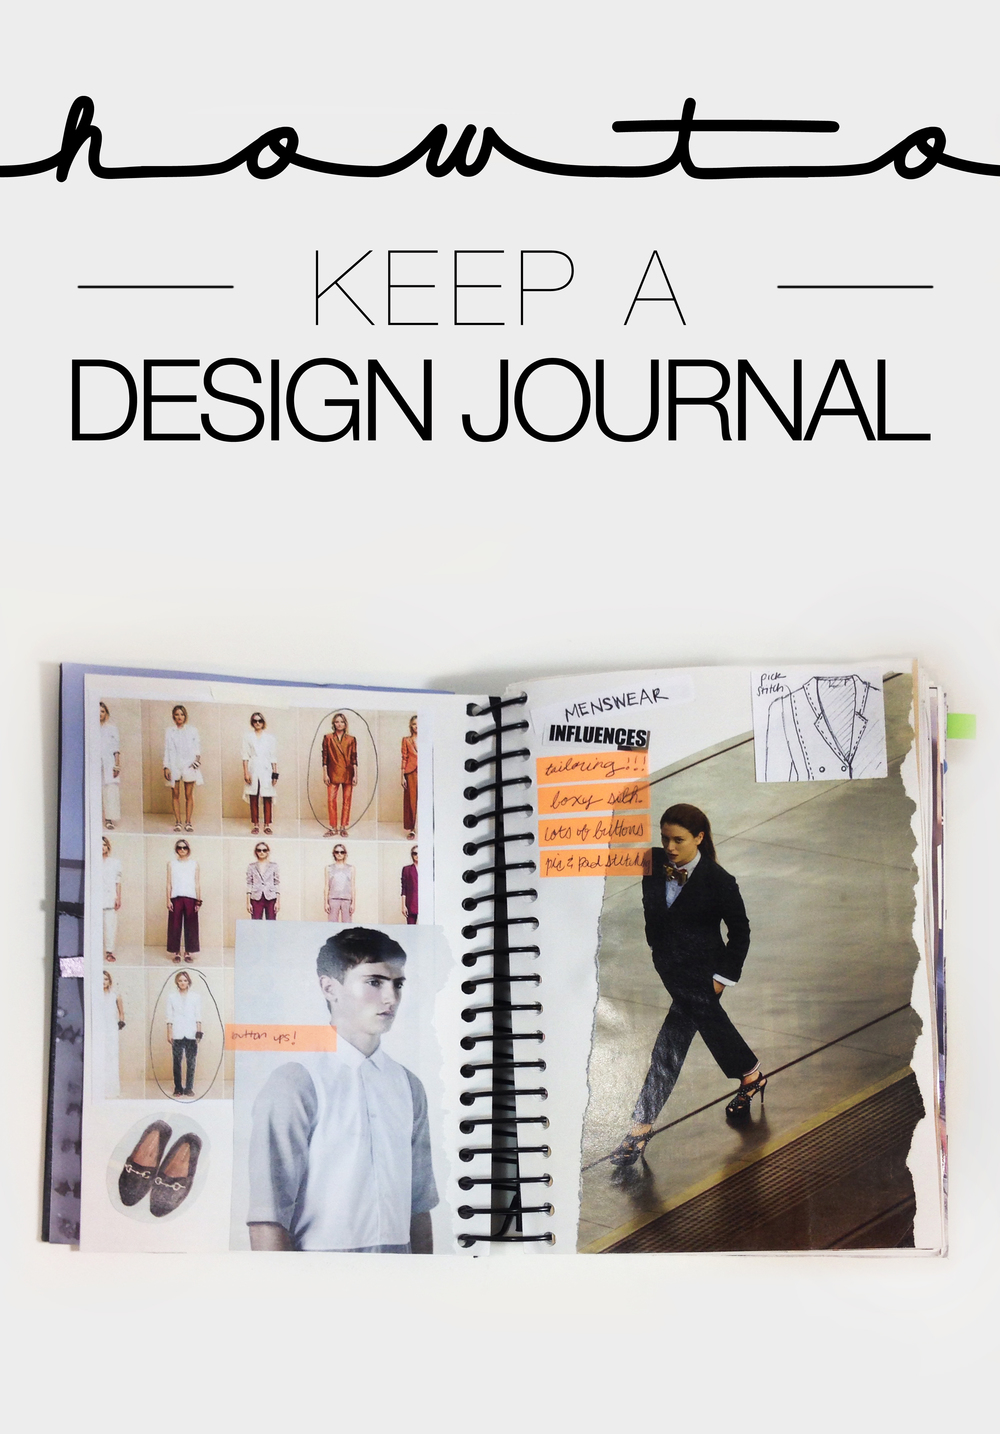 HOW TO KEEP A DESIGN JOURNAL | THE PAPER CURATOR